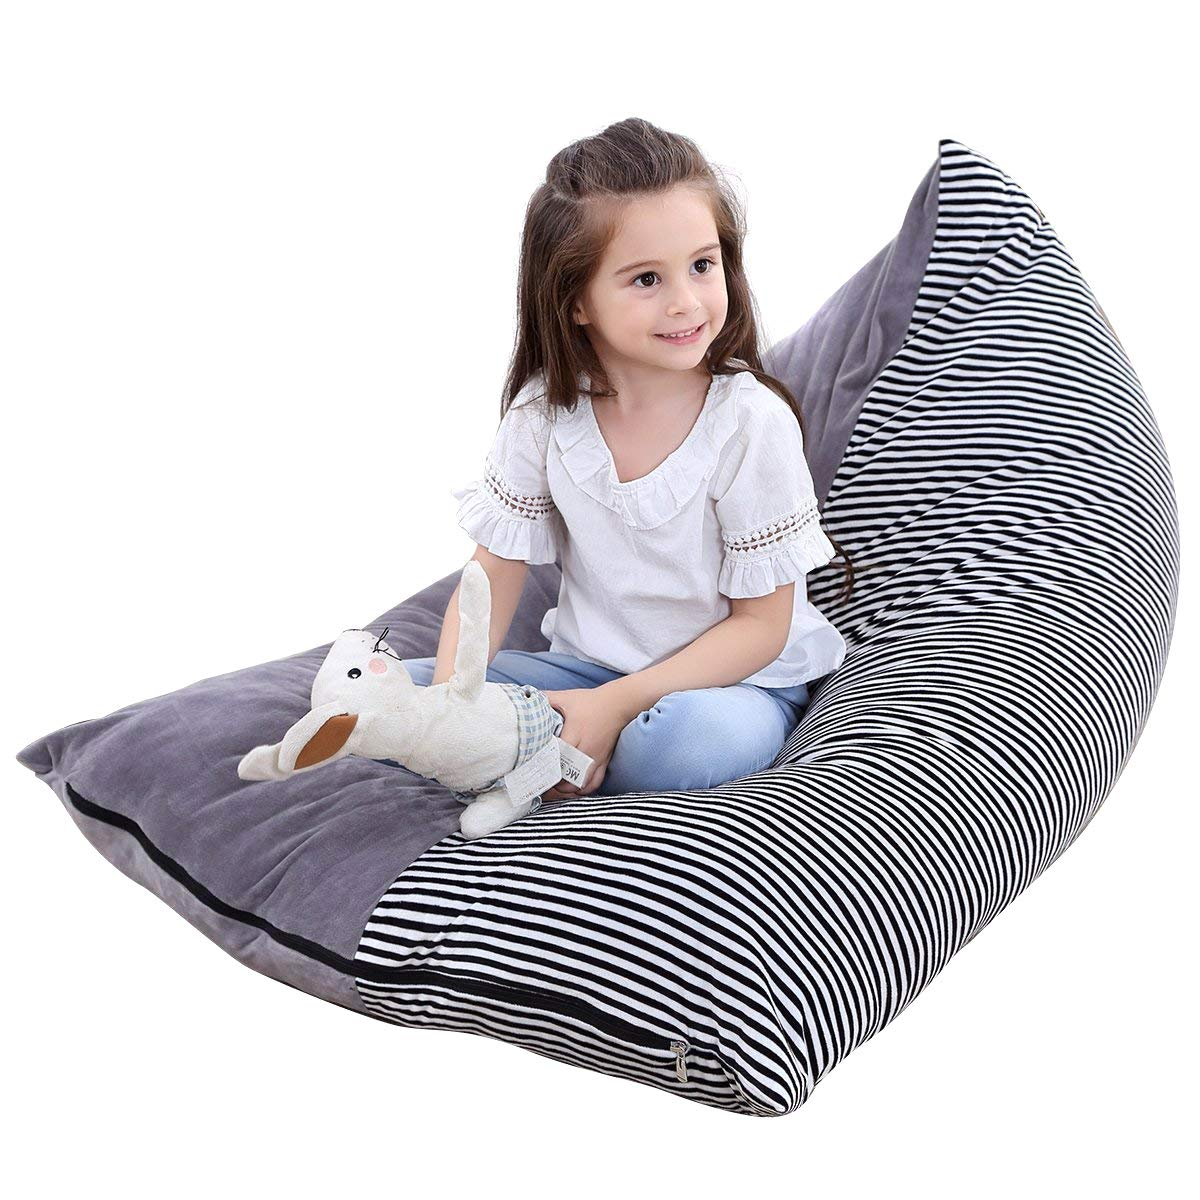 Yinuoday Stuffed Animal Bean Bag Chair Kids Toy Storage Organizer Stuffie Seat, Foldable Floor Chair Sofa Toy Storage Bean Bag Chair Seat for Kids, Teens and Adults   Extra Large   Super Soft Velvet